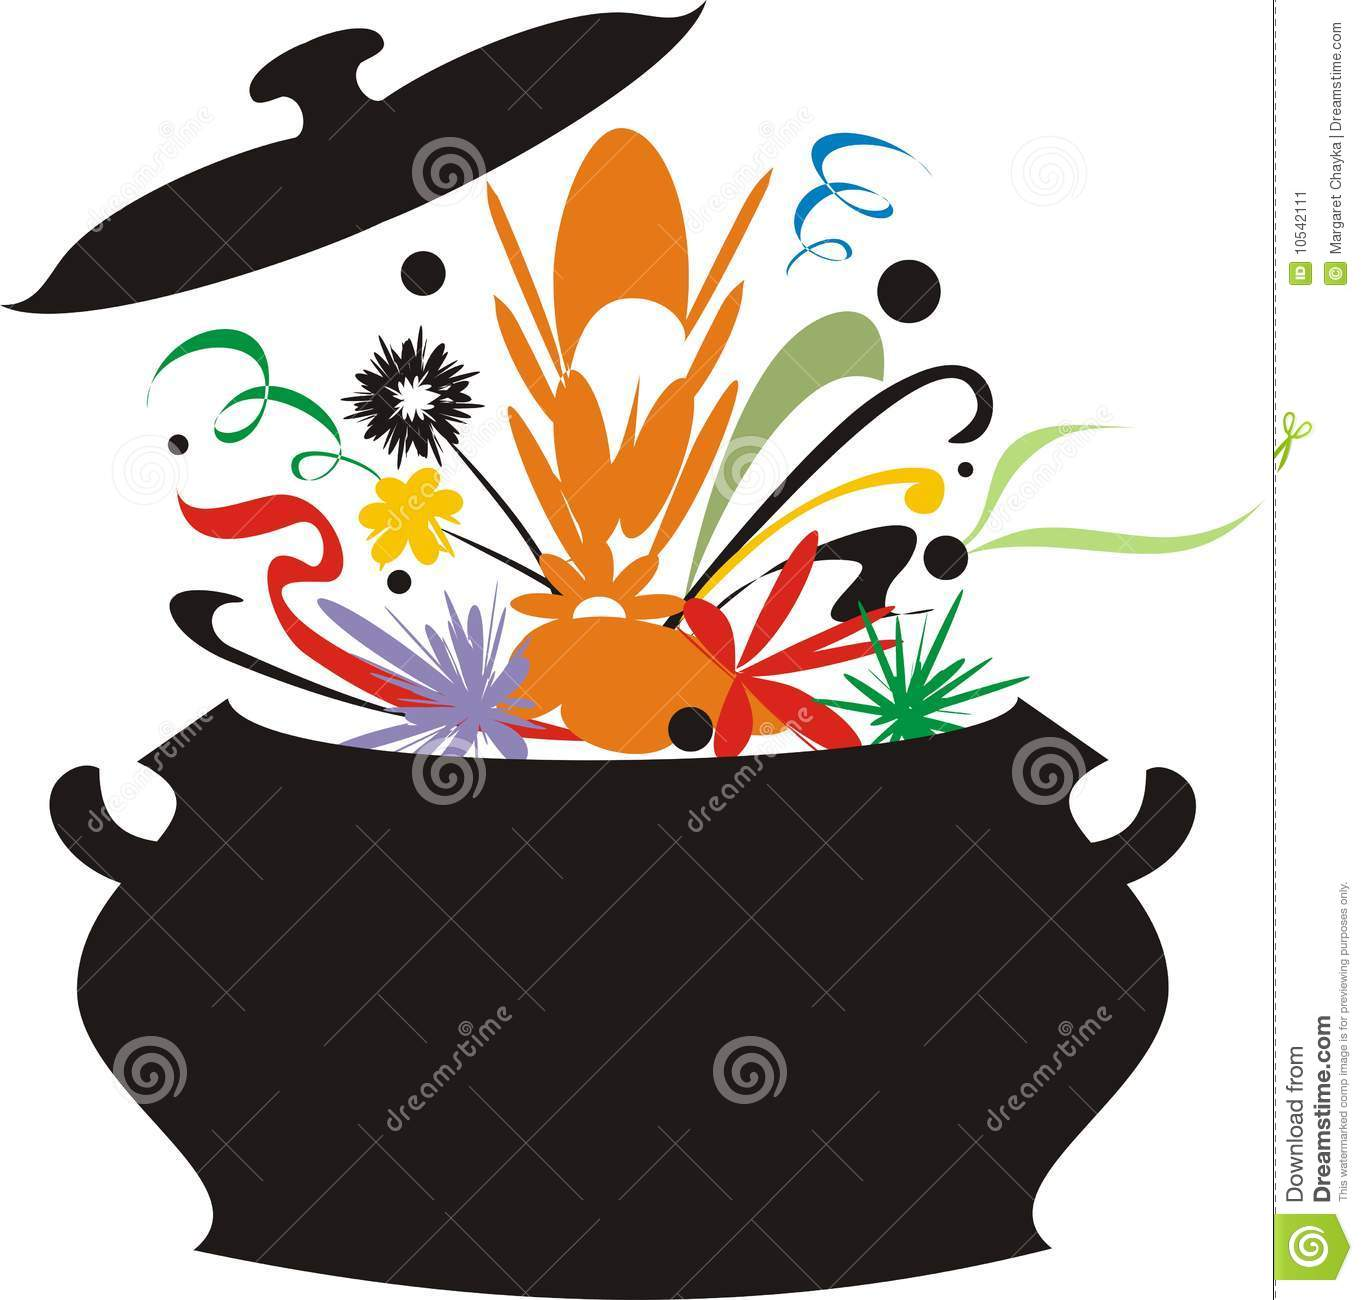 Melting Pot Clipart.